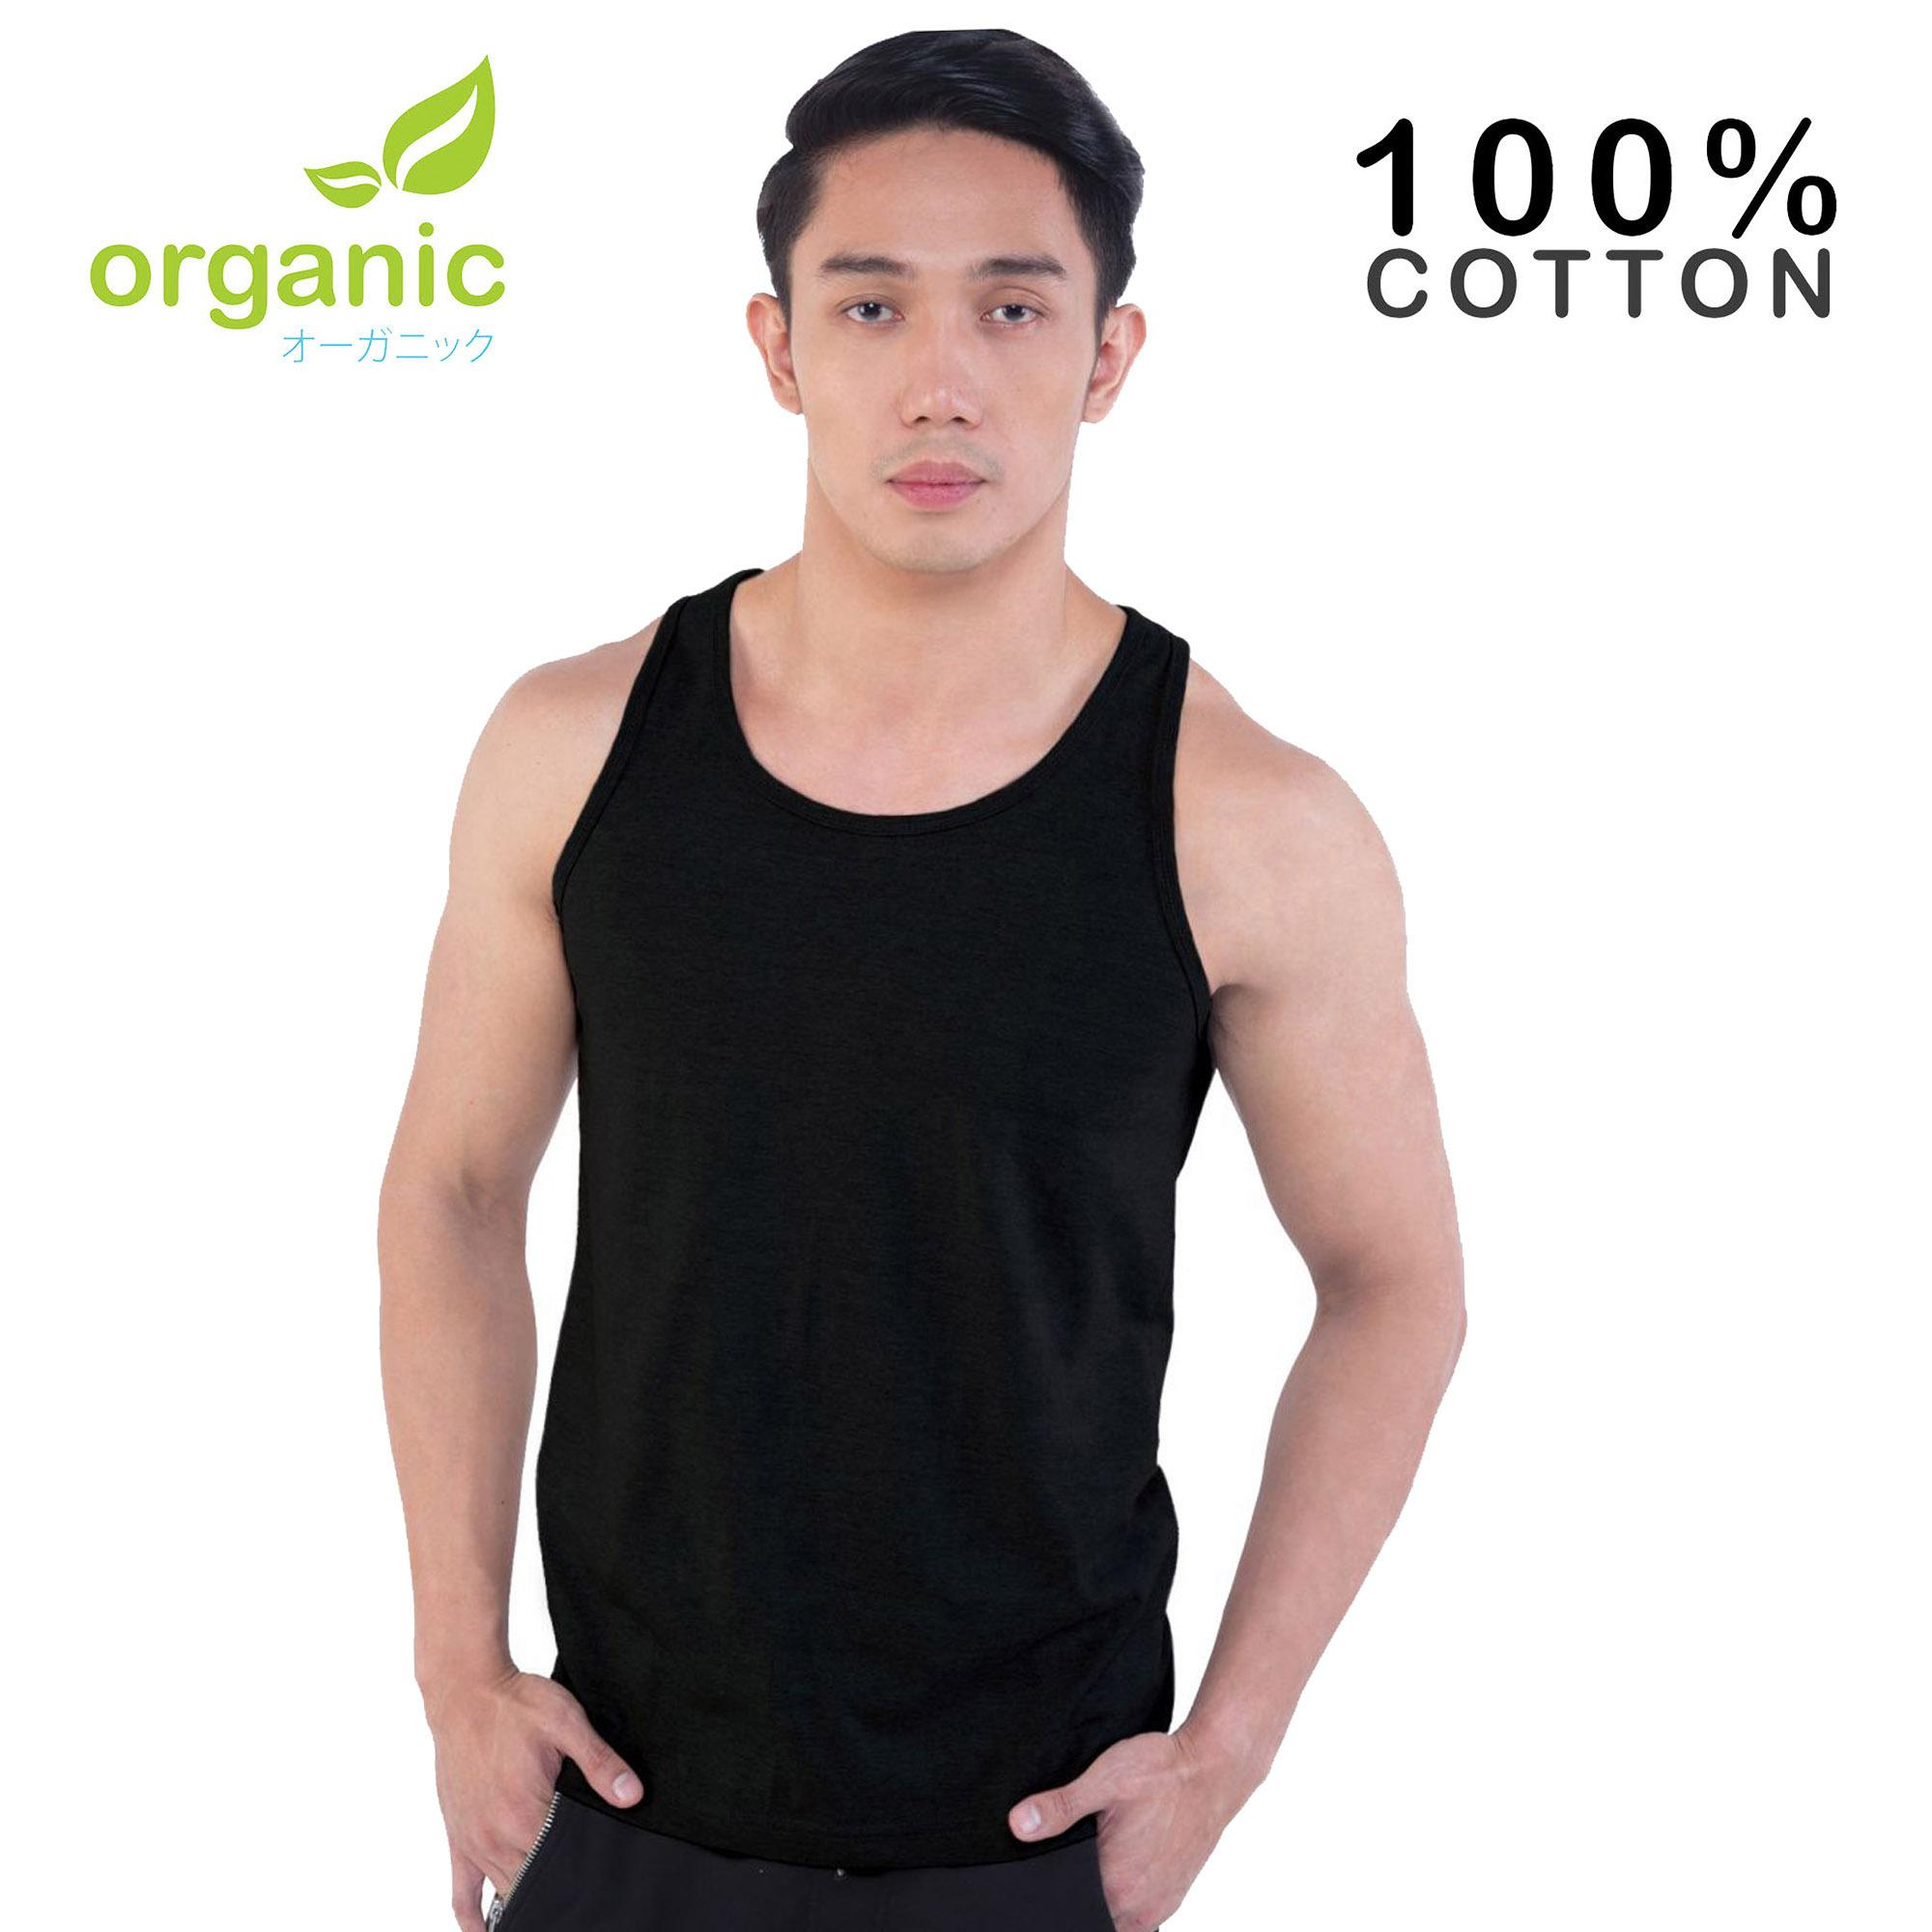 Organic Mens Tank Top Sando Tees T Shirt Tshirt Shirts Tshirts Tops Top For Men By Organic.